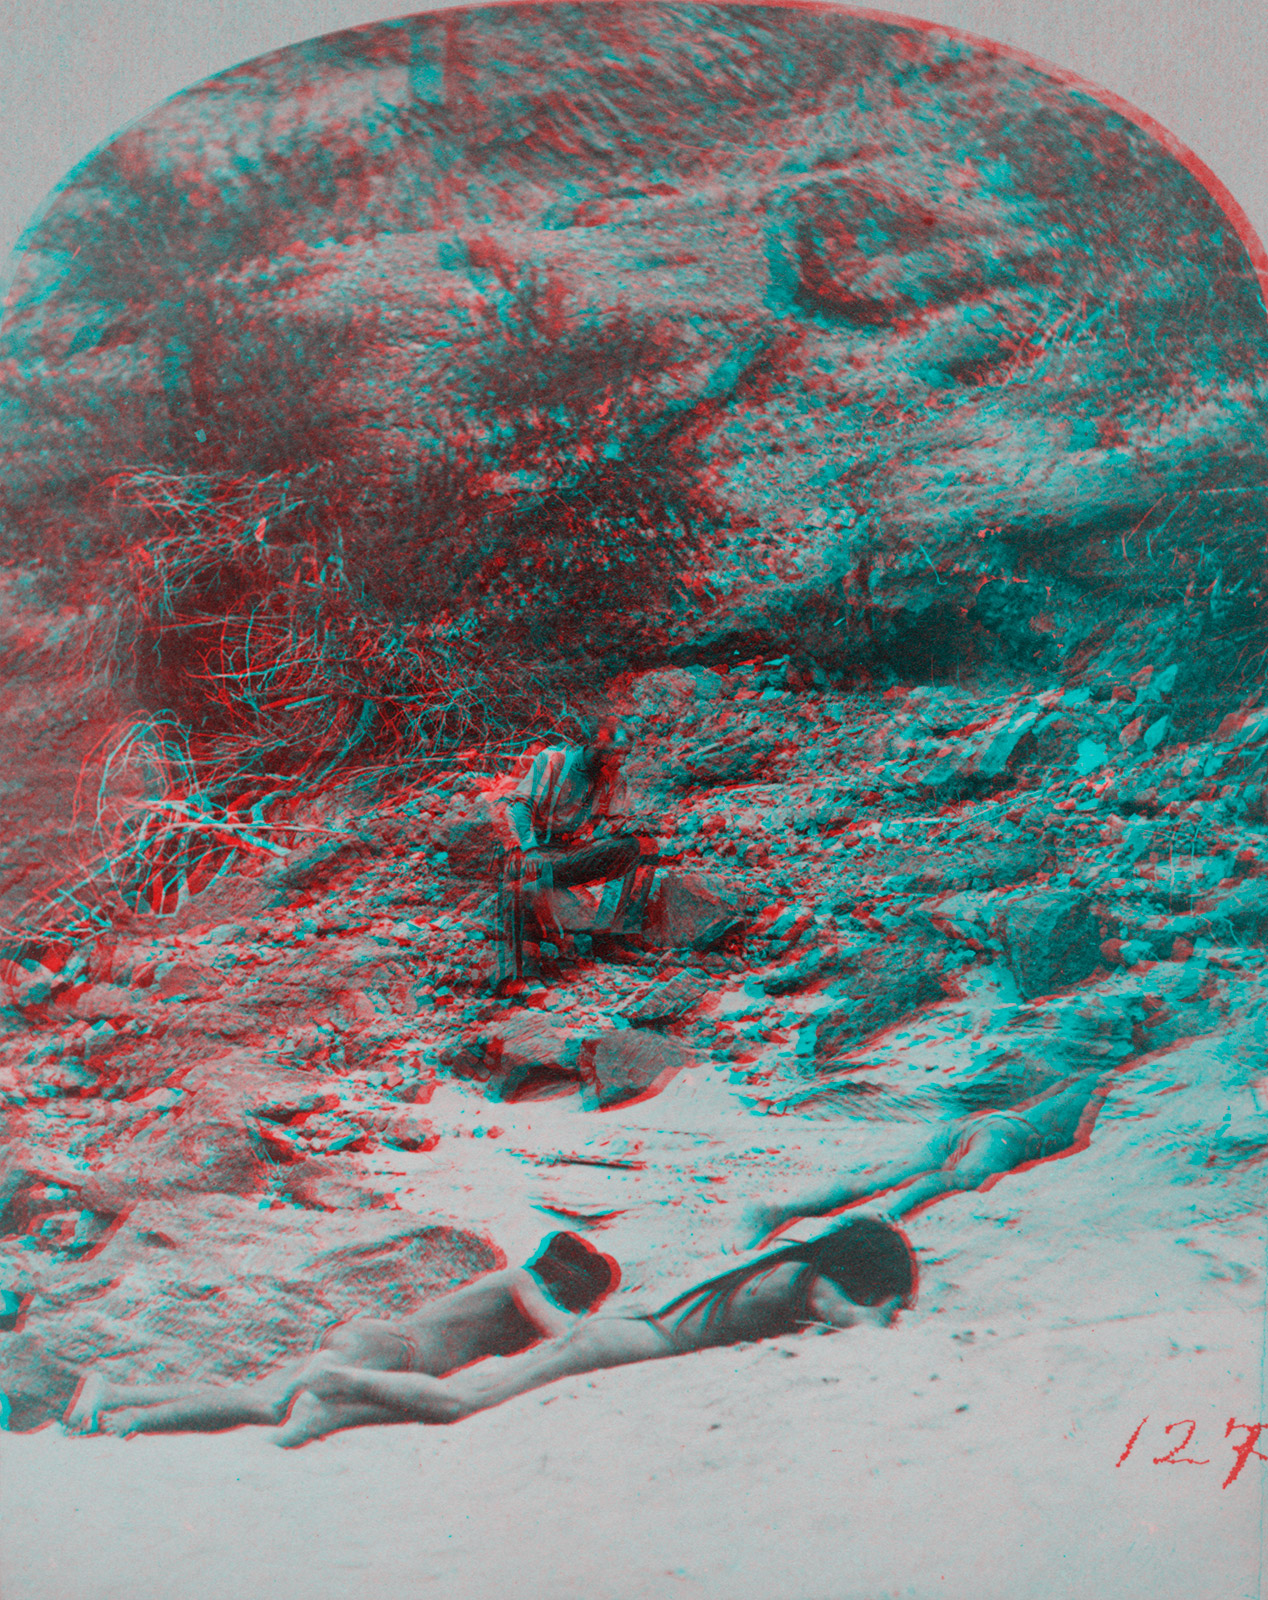 Indigenous Peoples' Day Anaglyph 5